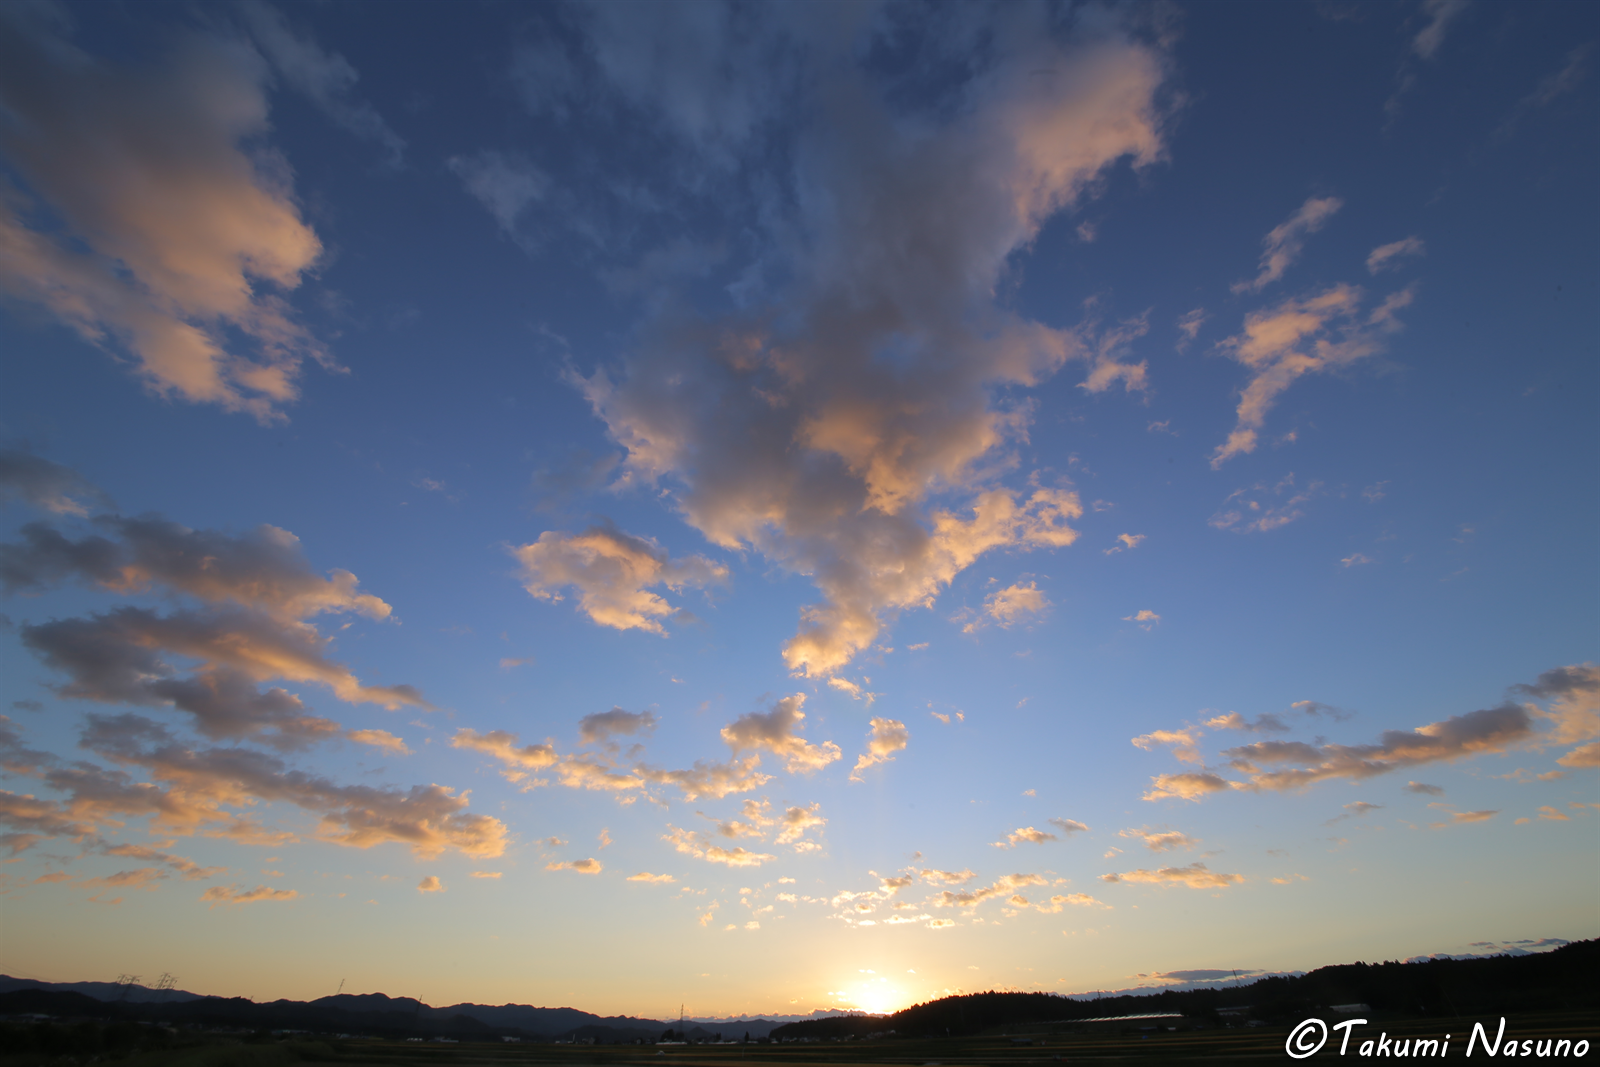 Horizon and Sunset at Yashirogawa District of Tanagura Town